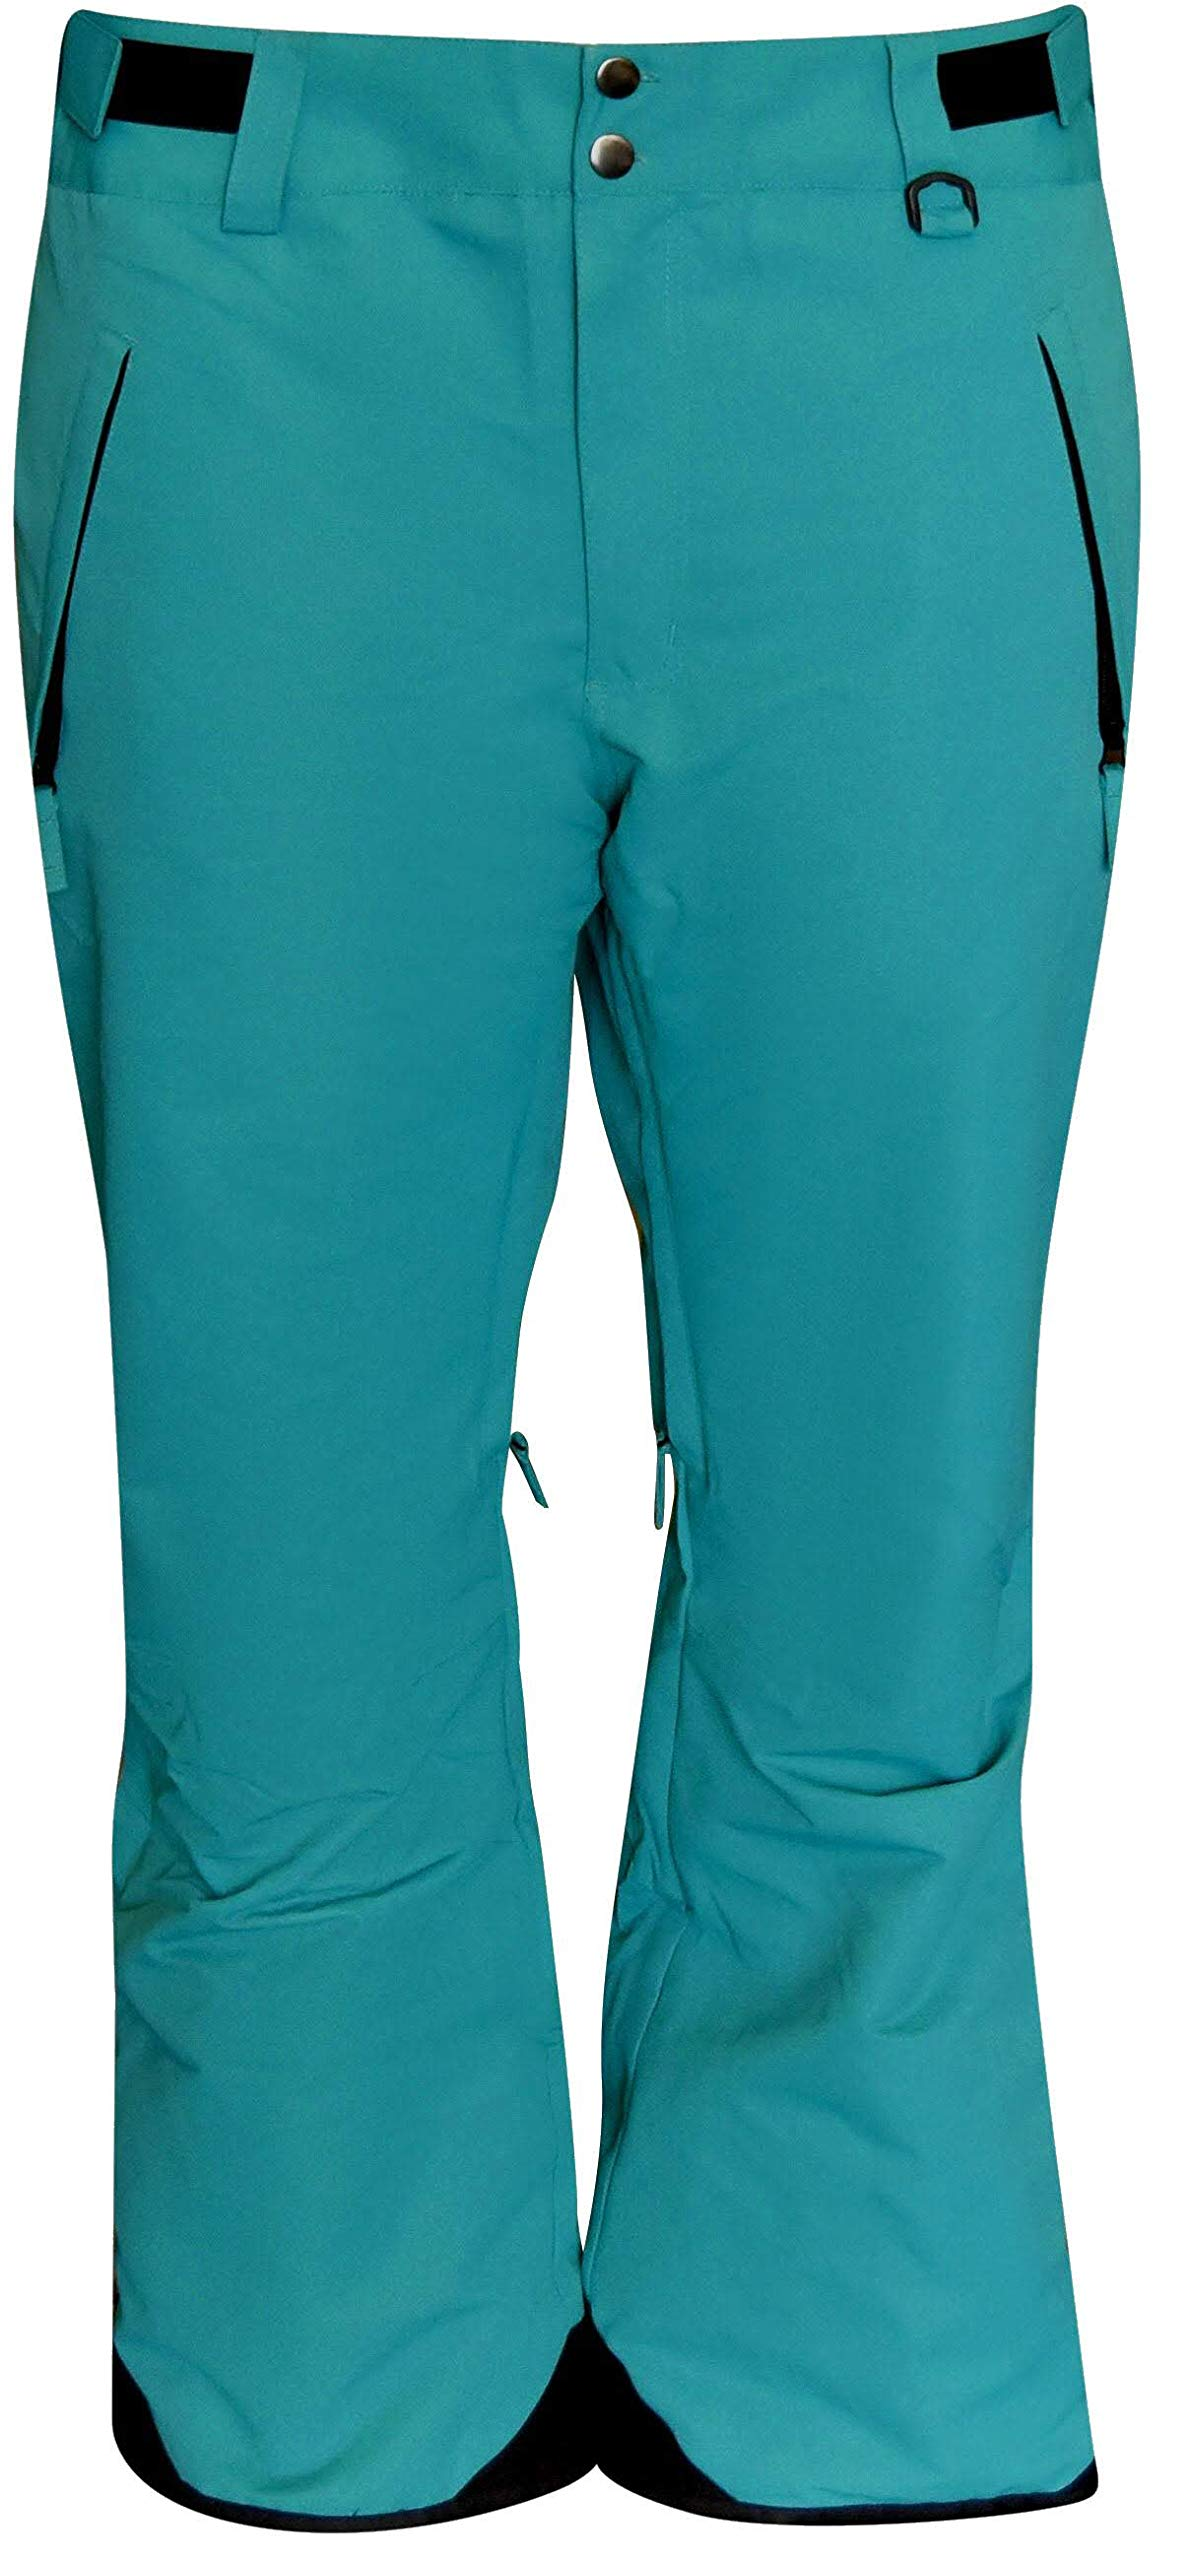 Snow Country Outerwear Womens Plus Size Snow Ski Pants Reg and Short …